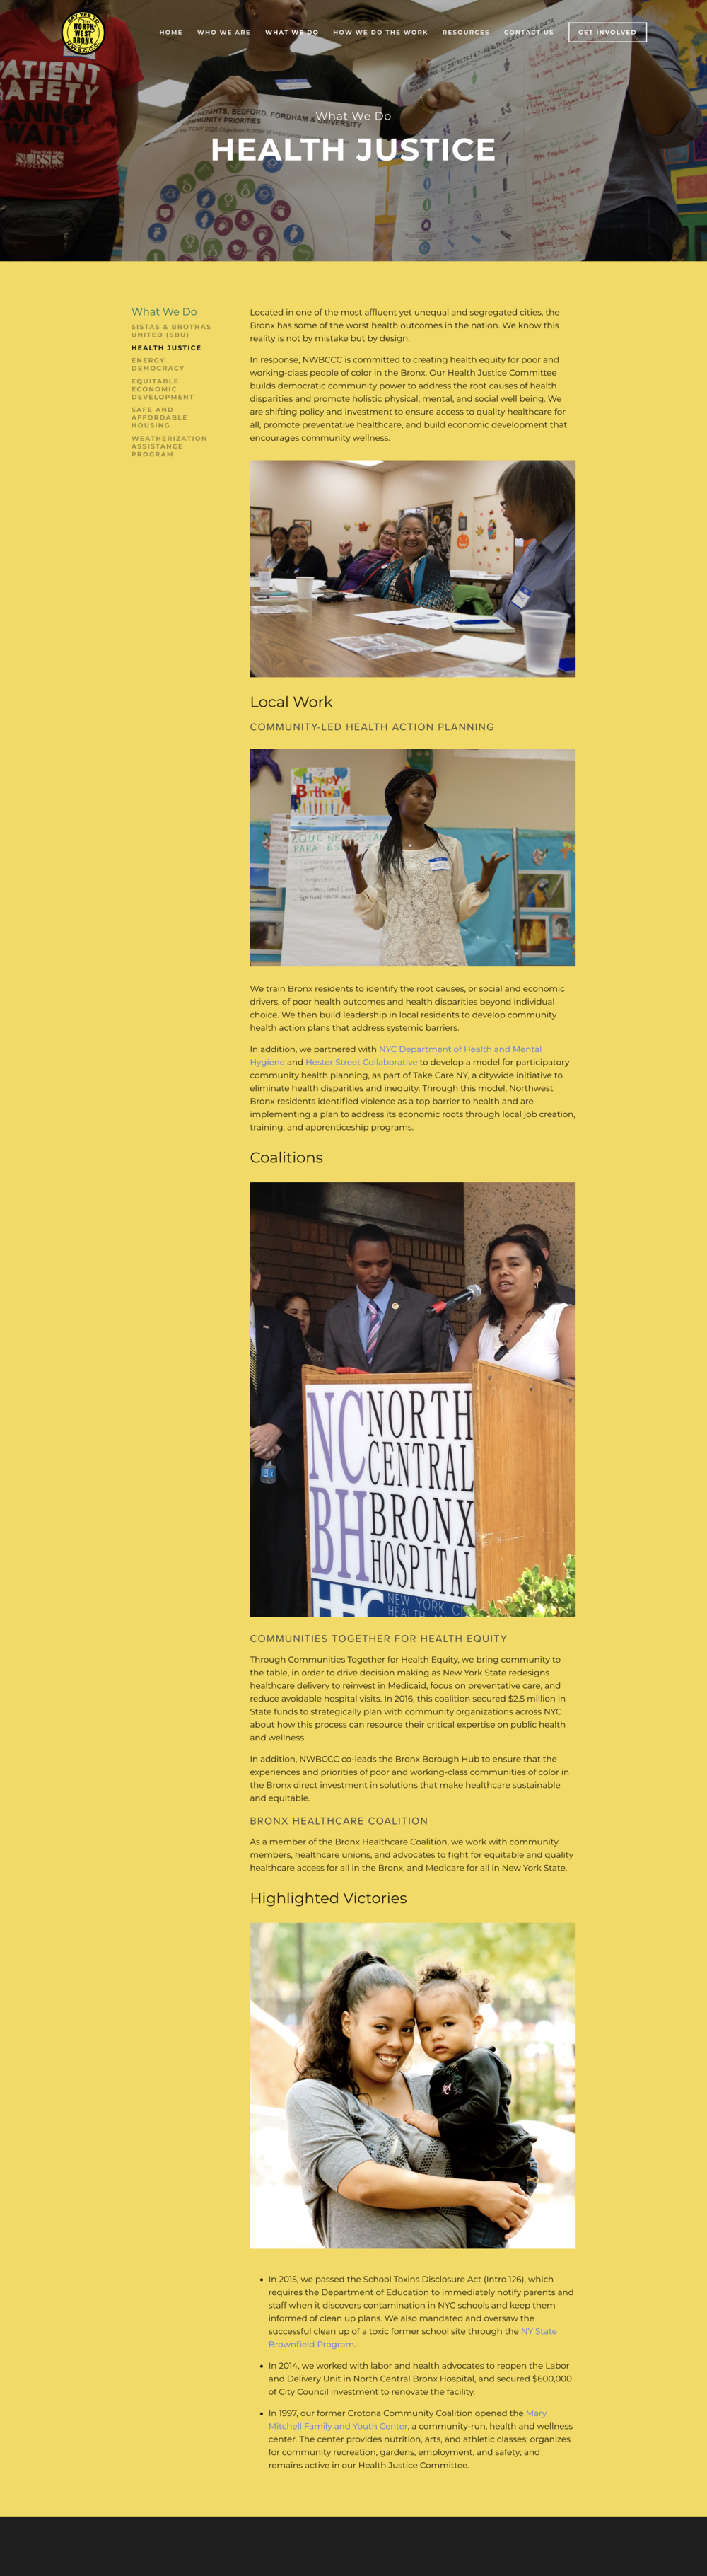 screencapture-northwestbronx-org-health-justice-2018-09-10-14_35_06.png